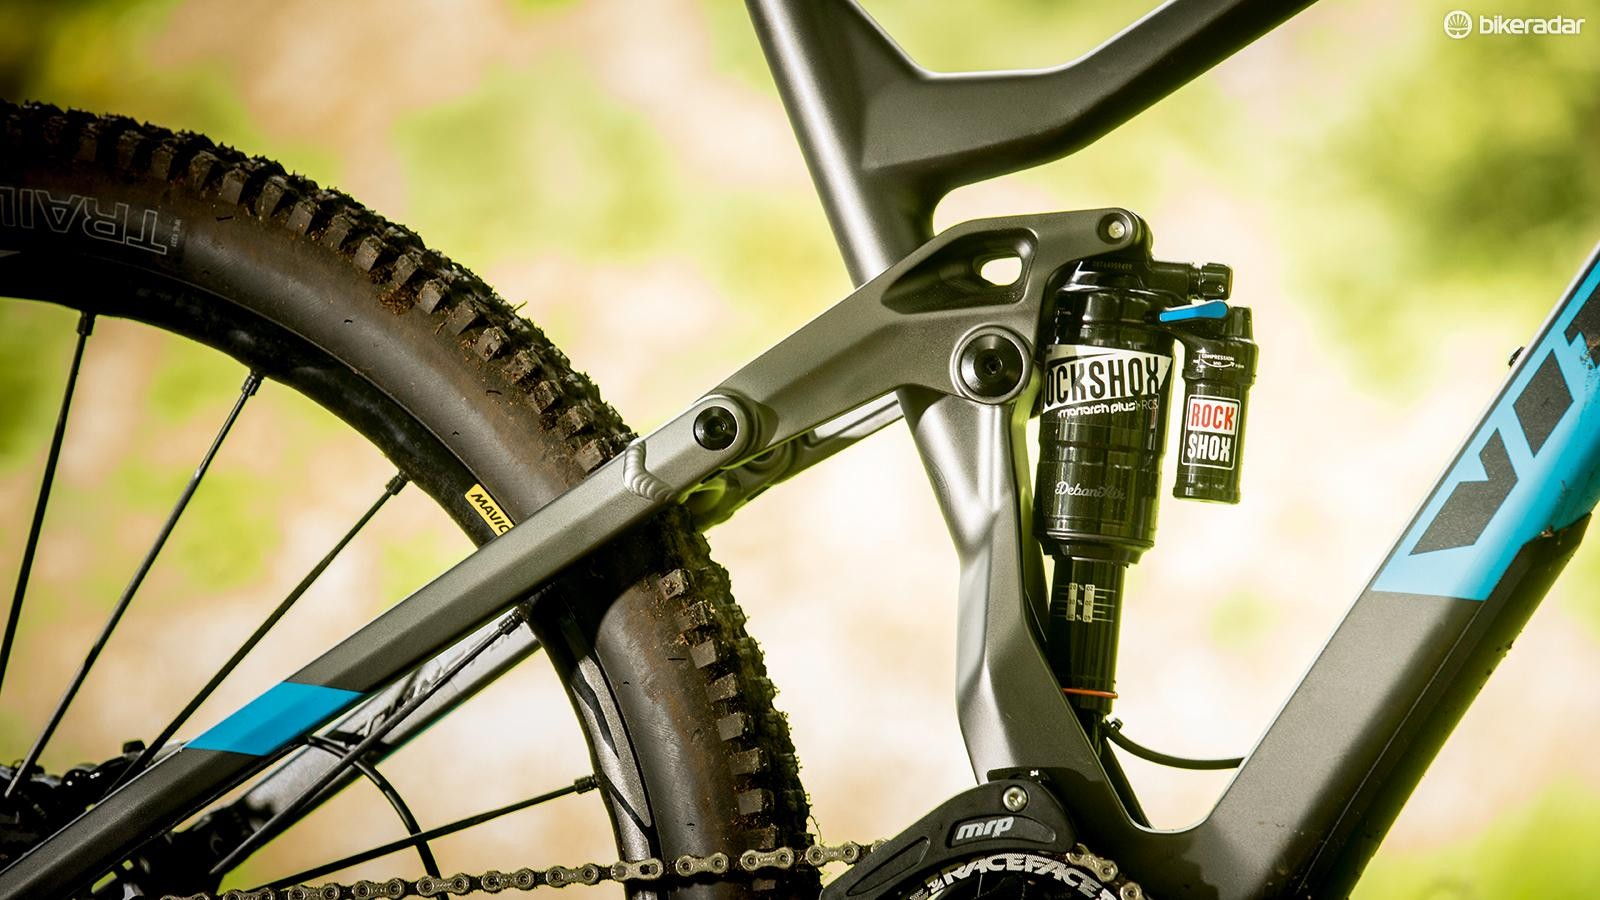 5a0fed1a869 The highly adjustable Monarch Plus shock makes it easy to get a good  suspension feel